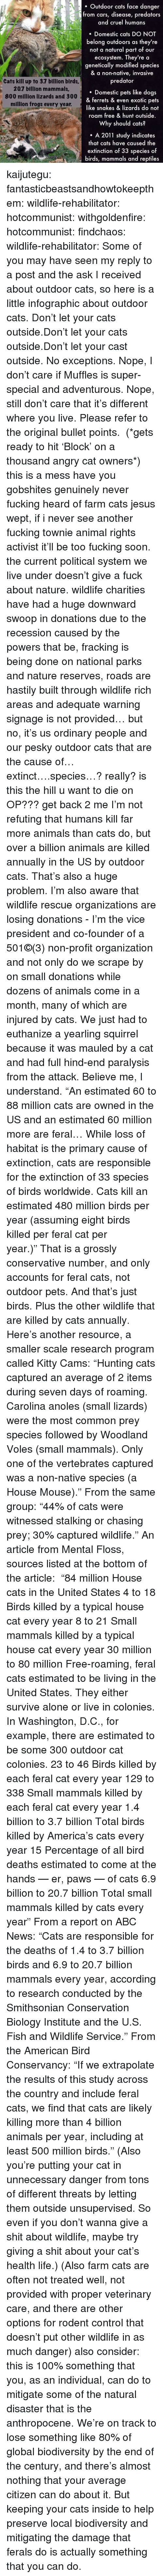 "Smithsonian: . Outdoor cats face danger  from cars, disease, predators  and cruel humans  Domestic cats DO NOT  belong outdoors as they're  not a natural part of our  ecosystem. They're a  genetically modified species  & a non-native, invasive  predator  Cats kill up to 3.7 billion birds  20.7 billion mammals,  800 million lizards and 300  million frogs every year.  . Domestic pets like dogs  & ferrets & even exotic pets  like snakes & lizards do not  roam free & hunt outside.  Why should cats?  A 2011 study indicates  that cats have caused the  extinction of 33 species of  birds, mammals and reptiles kaijutegu:  fantasticbeastsandhowtokeepthem:  wildlife-rehabilitator:  hotcommunist:  withgoldenfire:  hotcommunist:  findchaos:  wildlife-rehabilitator:  Some of you may have seen my reply to a post and the ask I received about outdoor cats, so here is a little infographic about outdoor cats.  Don't let your cats outside.Don't let your cats outside.Don't let your cast outside. No exceptions. Nope, I don't care if Muffles is super-special and adventurous. Nope, still don't care that it's different where you live. Please refer to the original bullet points.  (*gets ready to hit 'Block' on a thousand angry cat owners*)  this is a mess  have you gobshites genuinely never fucking heard of farm cats jesus wept, if i never see another fucking townie animal rights activist it'll be too fucking soon.  the current political system we live under doesn't give a fuck about nature. wildlife charities have had a huge downward swoop in donations due to the recession caused by the powers that be, fracking is being done on national parks and nature reserves, roads are hastily built through wildlife rich areas and adequate warning signage is not provided… but no, it's us ordinary people and our pesky outdoor cats that are the cause of…extinct….species…? really? is this the hill u want to die on OP??? get back 2 me   I'm not refuting that humans kill far more animals than cats do, but over a billion animals are killed annually in the US by outdoor cats. That's also a huge problem. I'm also aware that wildlife rescue organizations are losing donations - I'm the vice president and co-founder of a 501©(3) non-profit organization and not only do we scrape by on small donations while dozens of animals come in a month, many of which are injured by cats. We just had to euthanize a yearling squirrel because it was mauled by a cat and had full hind-end paralysis from the attack. Believe me, I understand. ""An estimated 60 to 88 million cats are owned in the US and an estimated 60 million more are feral… While loss of habitat is the primary cause of extinction, cats are responsible for the extinction of 33 species of birds worldwide. Cats kill an estimated 480 million birds per year (assuming eight birds killed per feral cat per year.)"" That is a grossly conservative number, and only accounts for feral cats, not outdoor pets. And that's just birds. Plus the other wildlife that are killed by cats annually. Here's another resource, a smaller scale research program called Kitty Cams: ""Hunting cats captured an average of 2 items during seven days of roaming. Carolina anoles (small lizards) were the most common prey species followed by Woodland Voles (small mammals). Only one of the vertebrates captured was a non-native species (a House Mouse)."" From the same group: ""44% of cats were witnessed stalking or chasing prey; 30% captured wildlife.""   An article from Mental Floss, sources listed at the bottom of the article:    ""84 million House cats in the United States 4 to 18 Birds killed by a typical house cat every year 8 to 21 Small mammals killed by a typical house cat every year 30 million to 80 million Free-roaming, feral cats estimated to be living in the United States. They either survive alone or live in colonies. In Washington, D.C., for example, there are estimated to be some 300 outdoor cat colonies. 23 to 46 Birds killed by each feral cat every year 129 to 338 Small mammals killed by each feral cat every year 1.4 billion to 3.7 billion Total birds killed by America's cats every year 15 Percentage of all bird deaths estimated to come at the hands — er, paws — of cats 6.9 billion to 20.7 billion Total small mammals killed by cats every year"" From a report on ABC News: ""Cats are responsible for the deaths of 1.4 to 3.7 billion birds and 6.9 to 20.7 billion mammals every year, according to research conducted by the Smithsonian Conservation Biology Institute and the U.S. Fish and Wildlife Service.""   From the American Bird Conservancy: ""If we extrapolate the results of this study across the country and include feral cats, we find that cats are likely killing more than 4 billion animals per year, including at least 500 million birds.""     (Also you're putting your cat in unnecessary danger from tons of different threats by letting them outside unsupervised. So even if you don't wanna give a shit about wildlife, maybe try giving a shit about your cat's health  life.) (Also farm cats are often not treated well, not provided with proper veterinary care, and there are other options for rodent control that doesn't put other wildlife in as much danger)  also consider: this is 100% something that you, as an individual, can do to mitigate some of the natural disaster that is the anthropocene. We're on track to lose something like 80% of global biodiversity by the end of the century, and there's almost nothing that your average citizen can do about it. But keeping your cats inside to help preserve local biodiversity and mitigating the damage that ferals do is actually something that you can do."